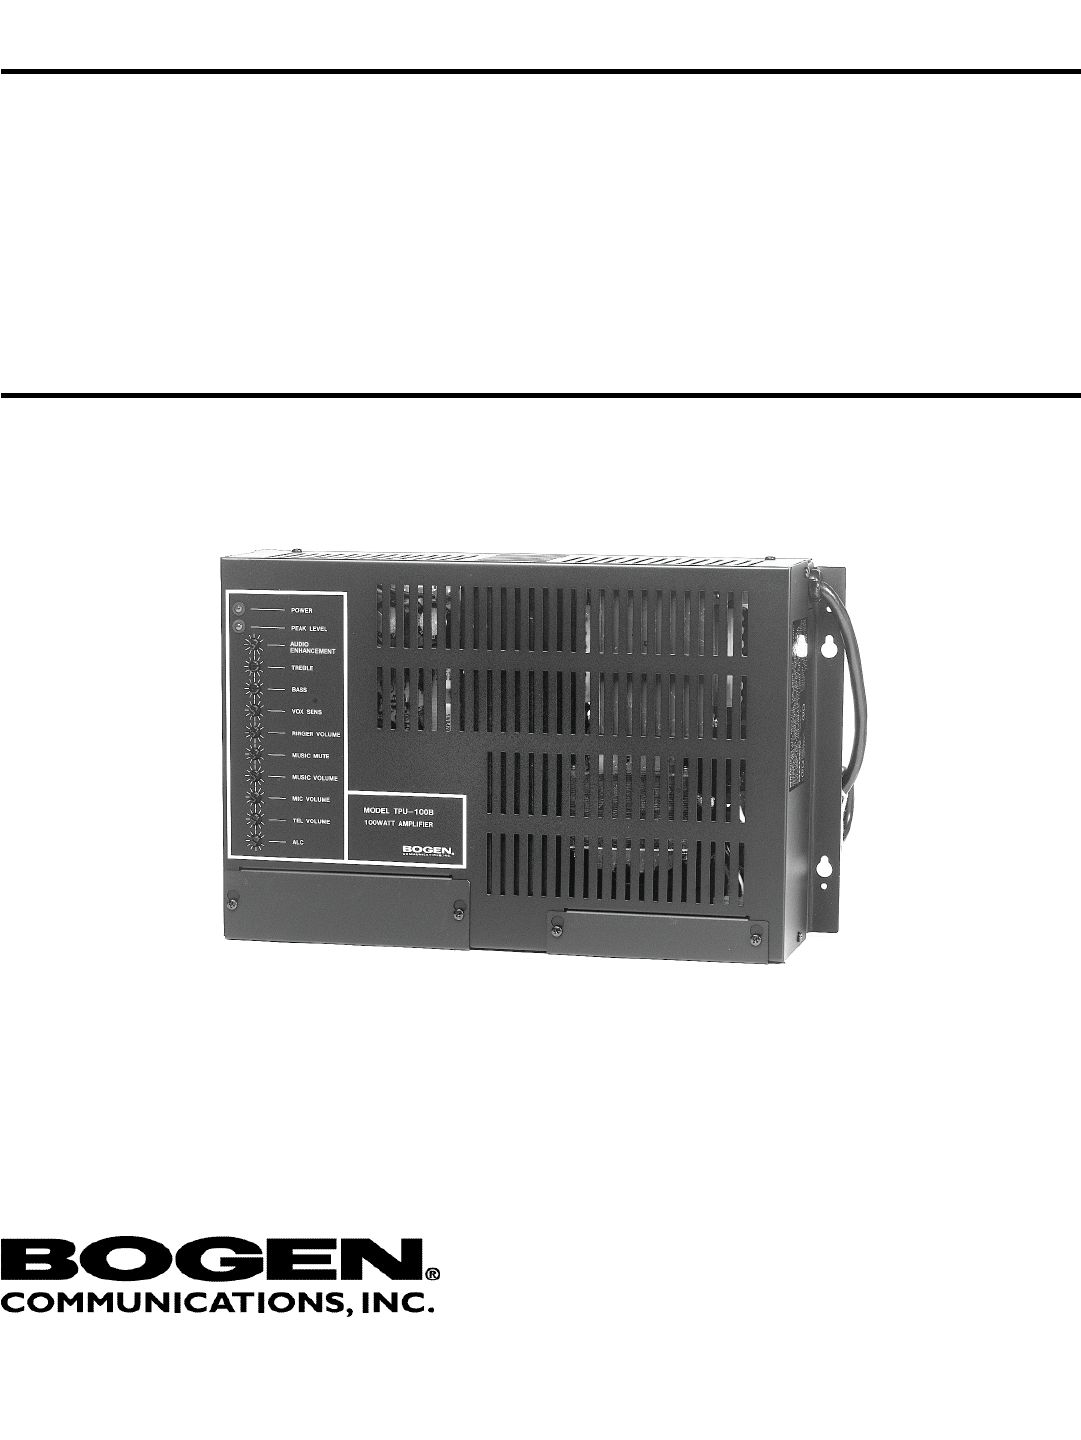 Bogen Tpu 100b Users Manual Tpu35b Tpu60b Tpu100b Telephone Paging 70v Speaker Wiring Diagram Amplifiers